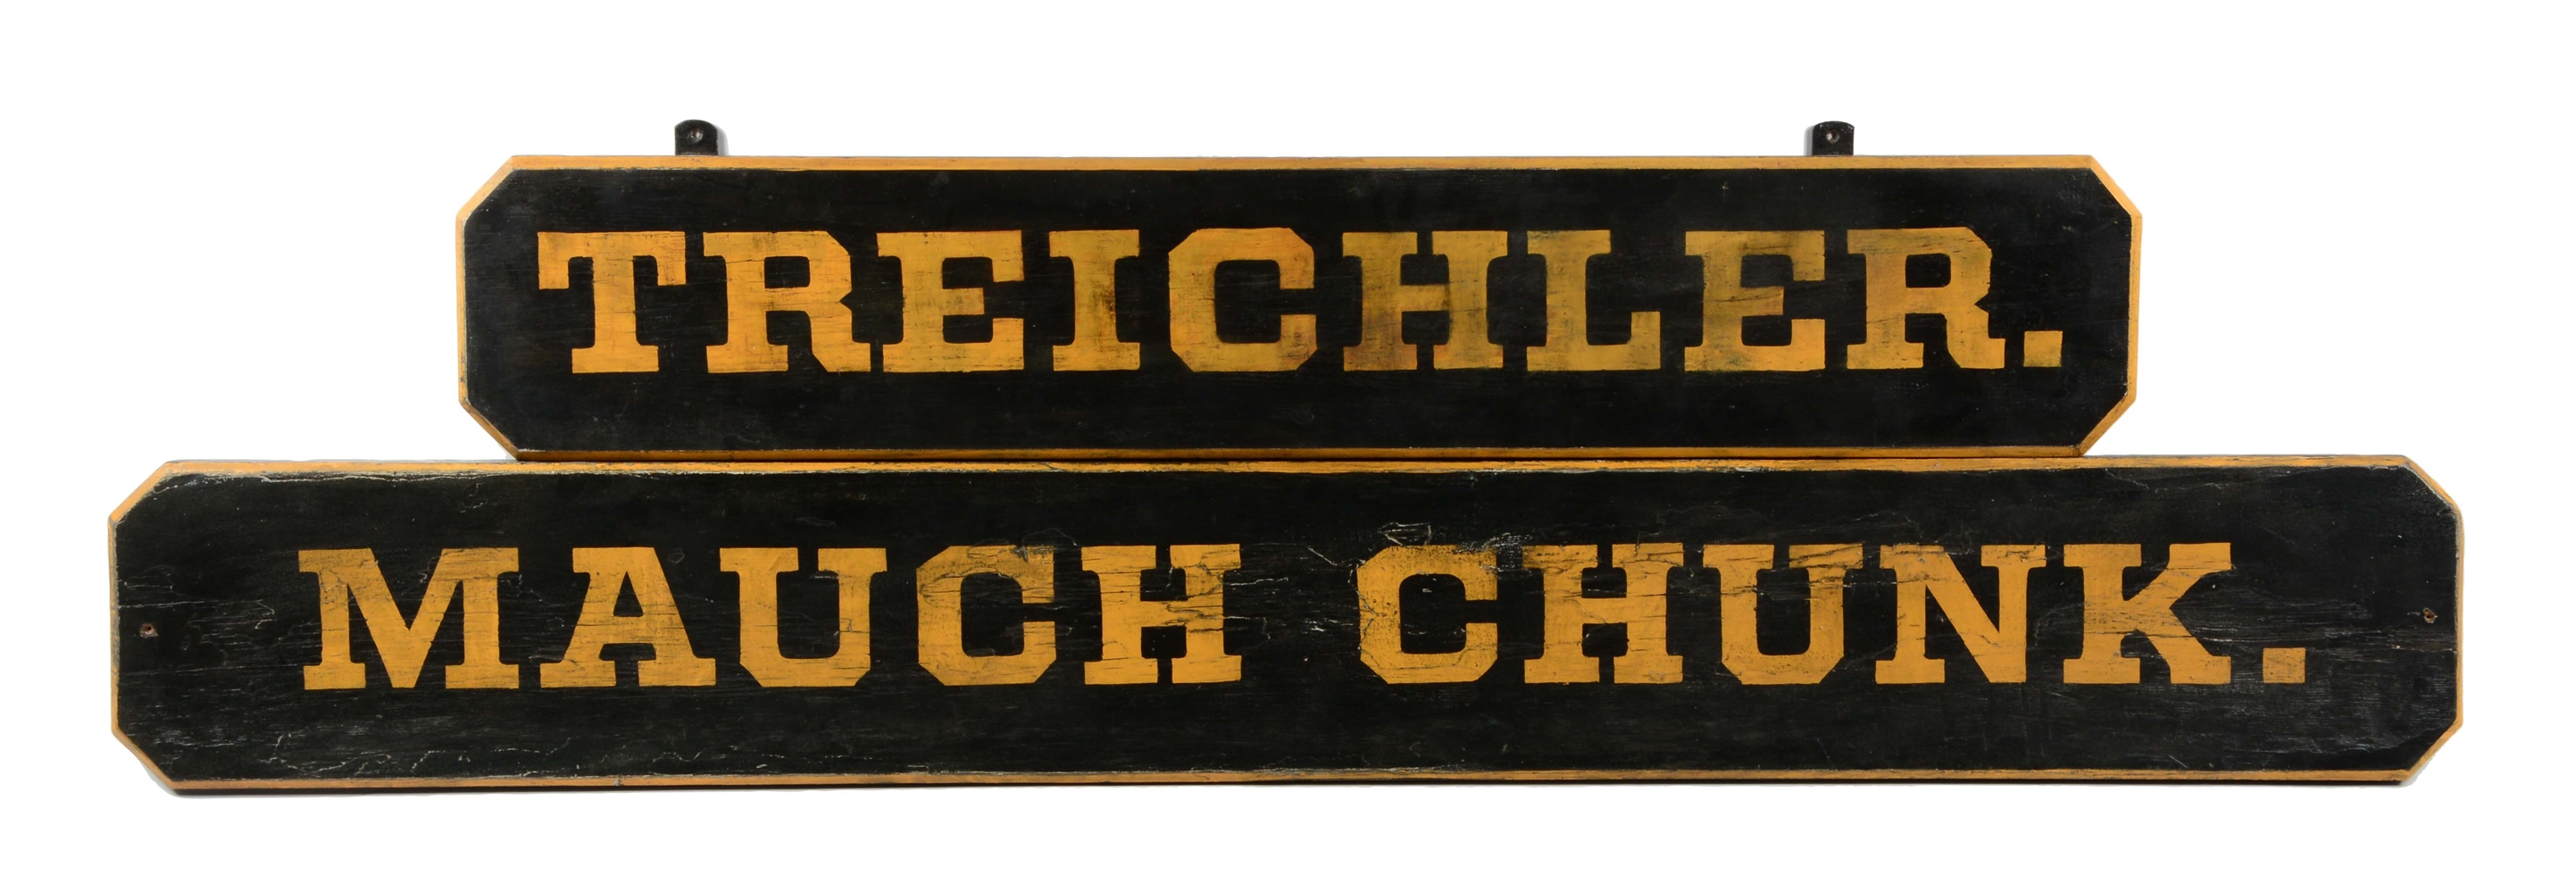 Lot of 2: Mauch Chunck & Tredichler Wooden Signs.